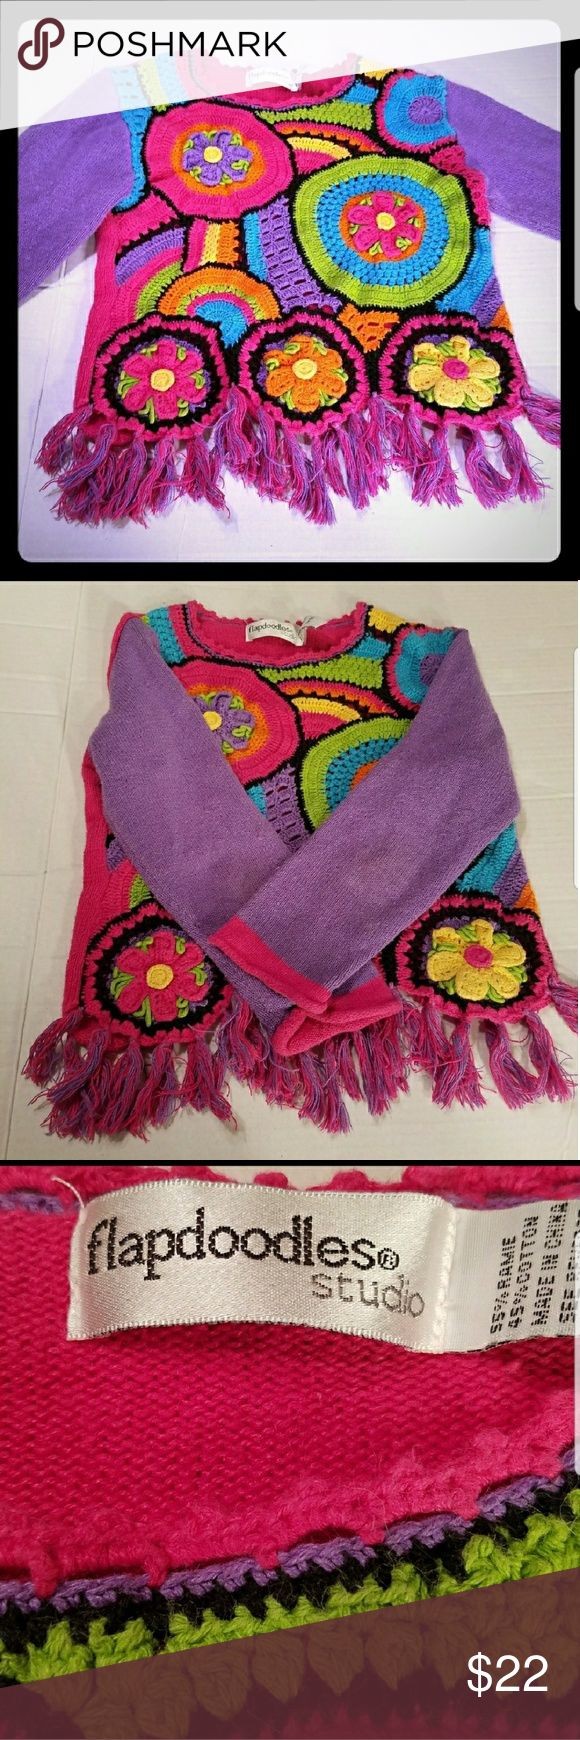 "Flapdoodles Girls Size 6X Crochet Sweater Girls Flapdoodles Hippy Boho Crochet Cotton Ramie Sweater Fringed scalloped bottom  Chest flat 14"" Length 15..."